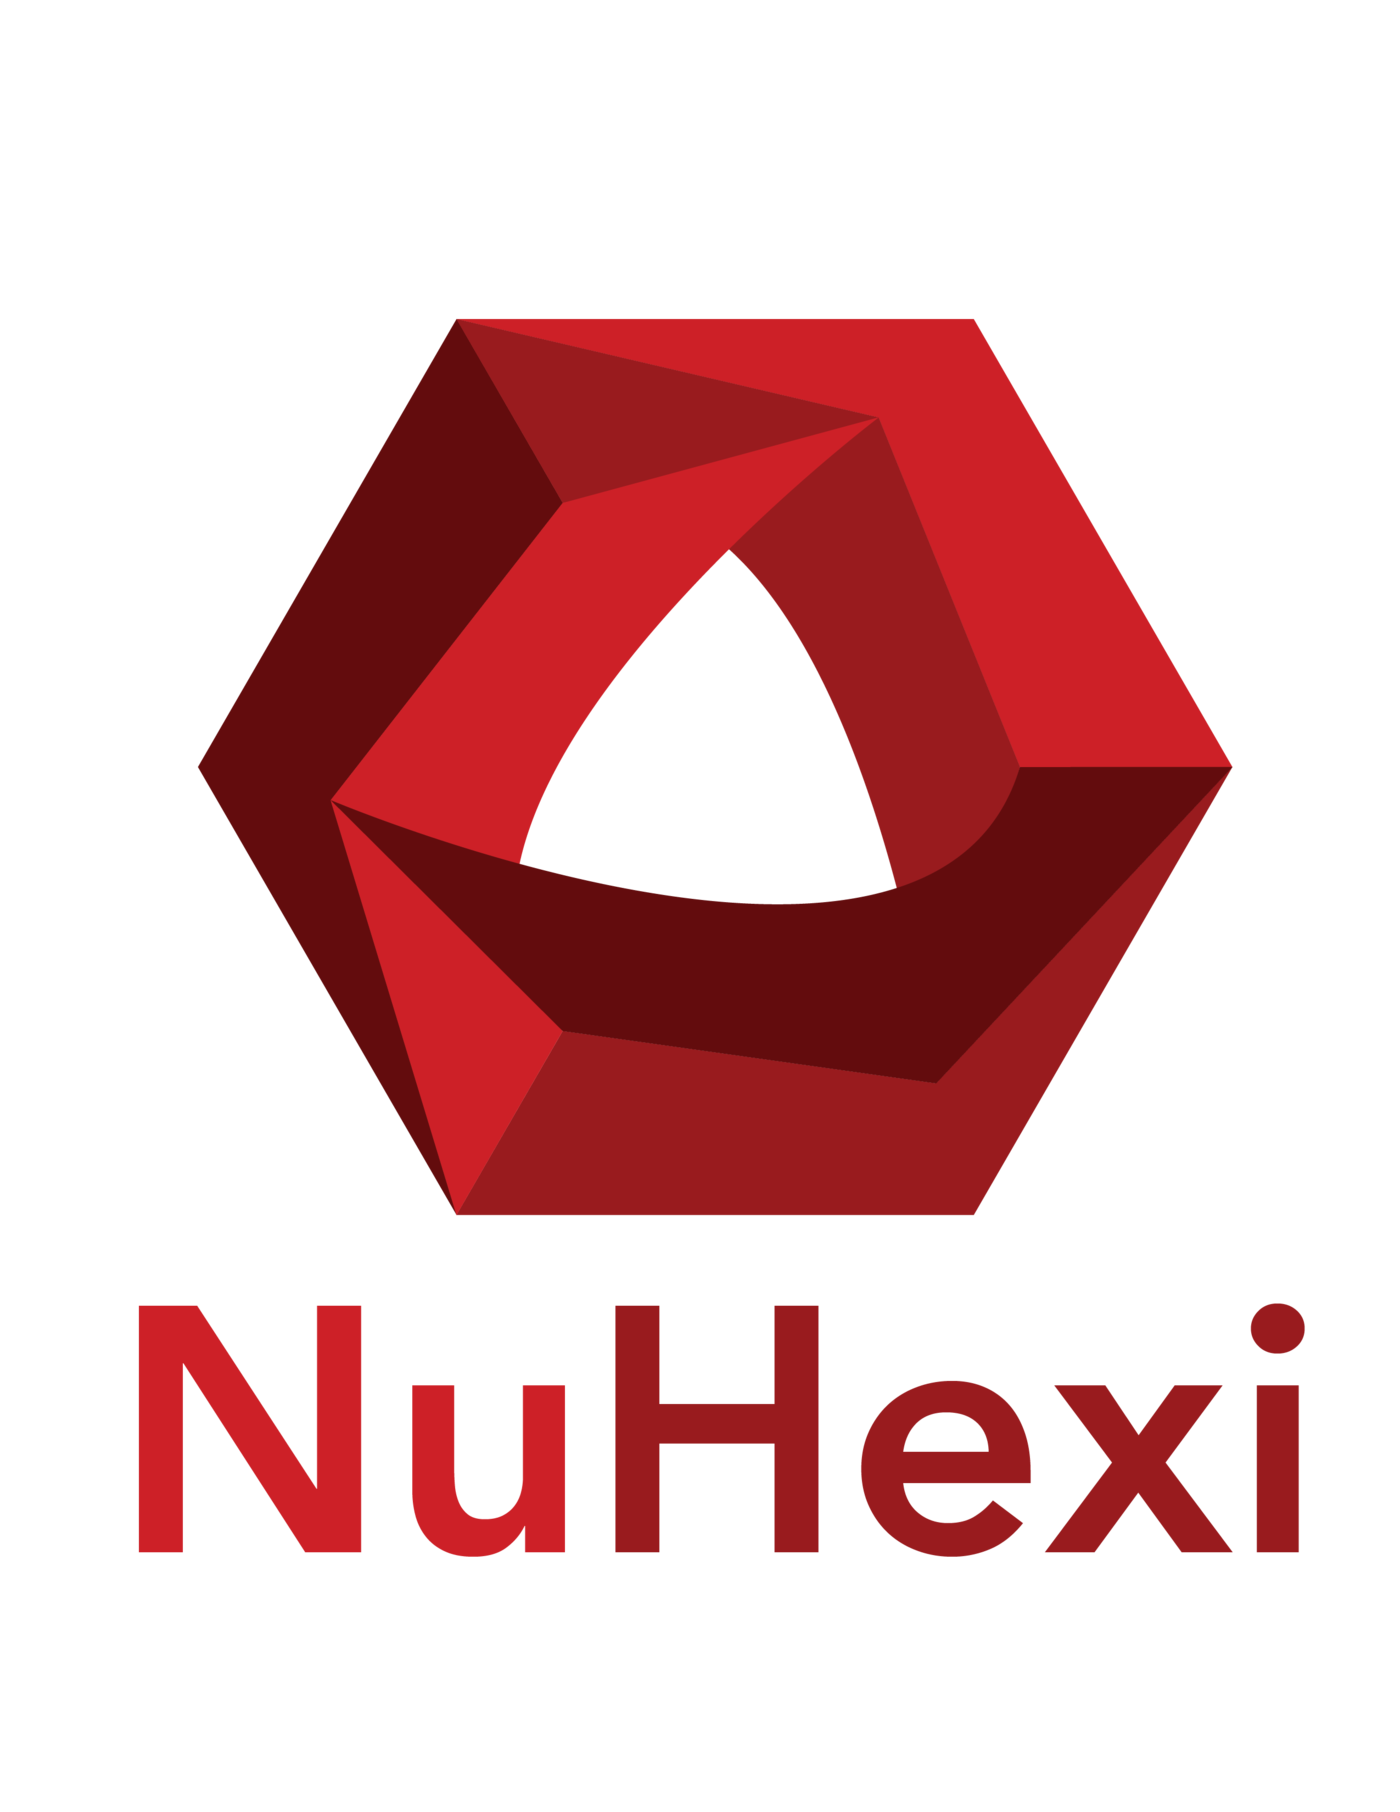 Projects by ricky marton at coroflot logo for a new marketing company called nuhexi logo variations will have different colors to represent different ares of the company biocorpaavc Image collections